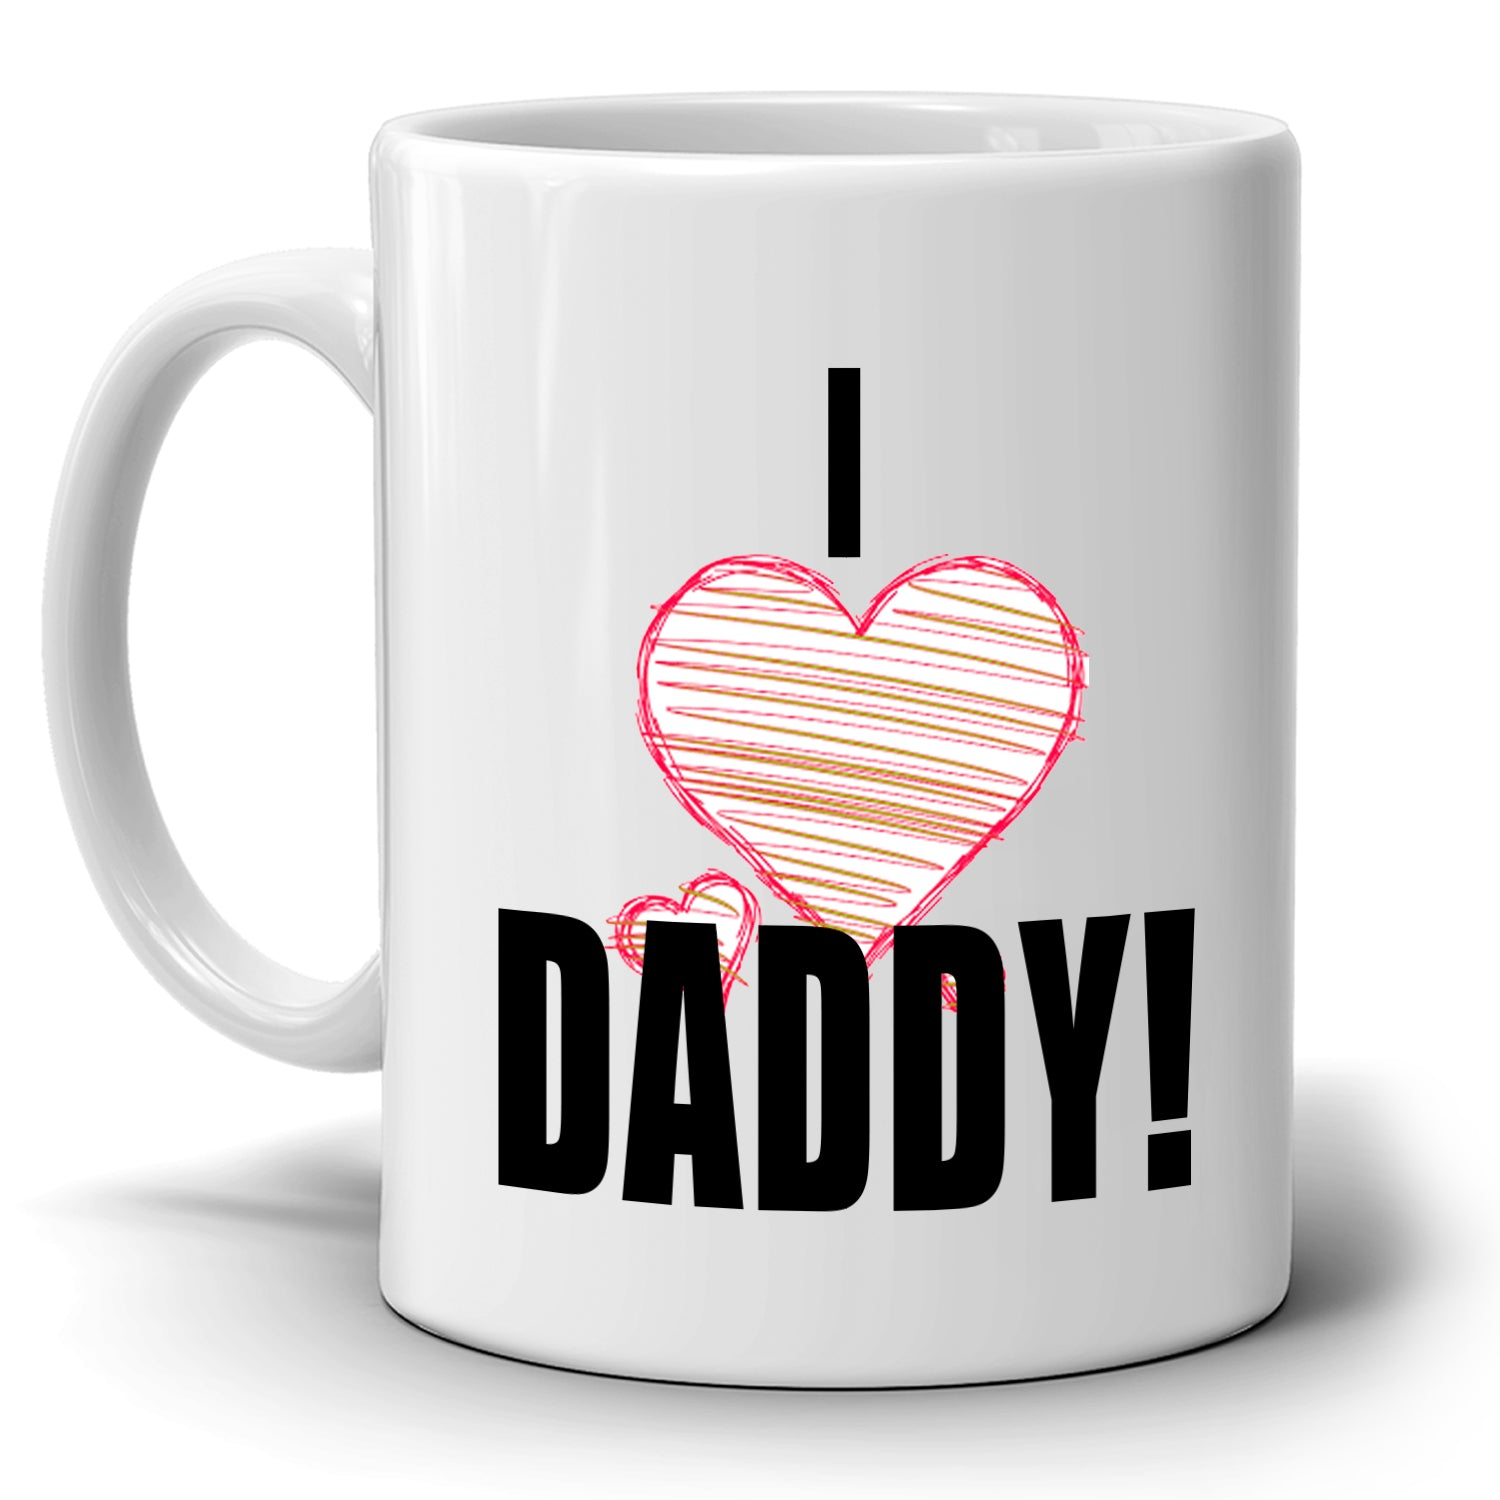 Cute Birthday And Fathers Day Gift From Daughters To Dad Mug I Love Daddy Printed